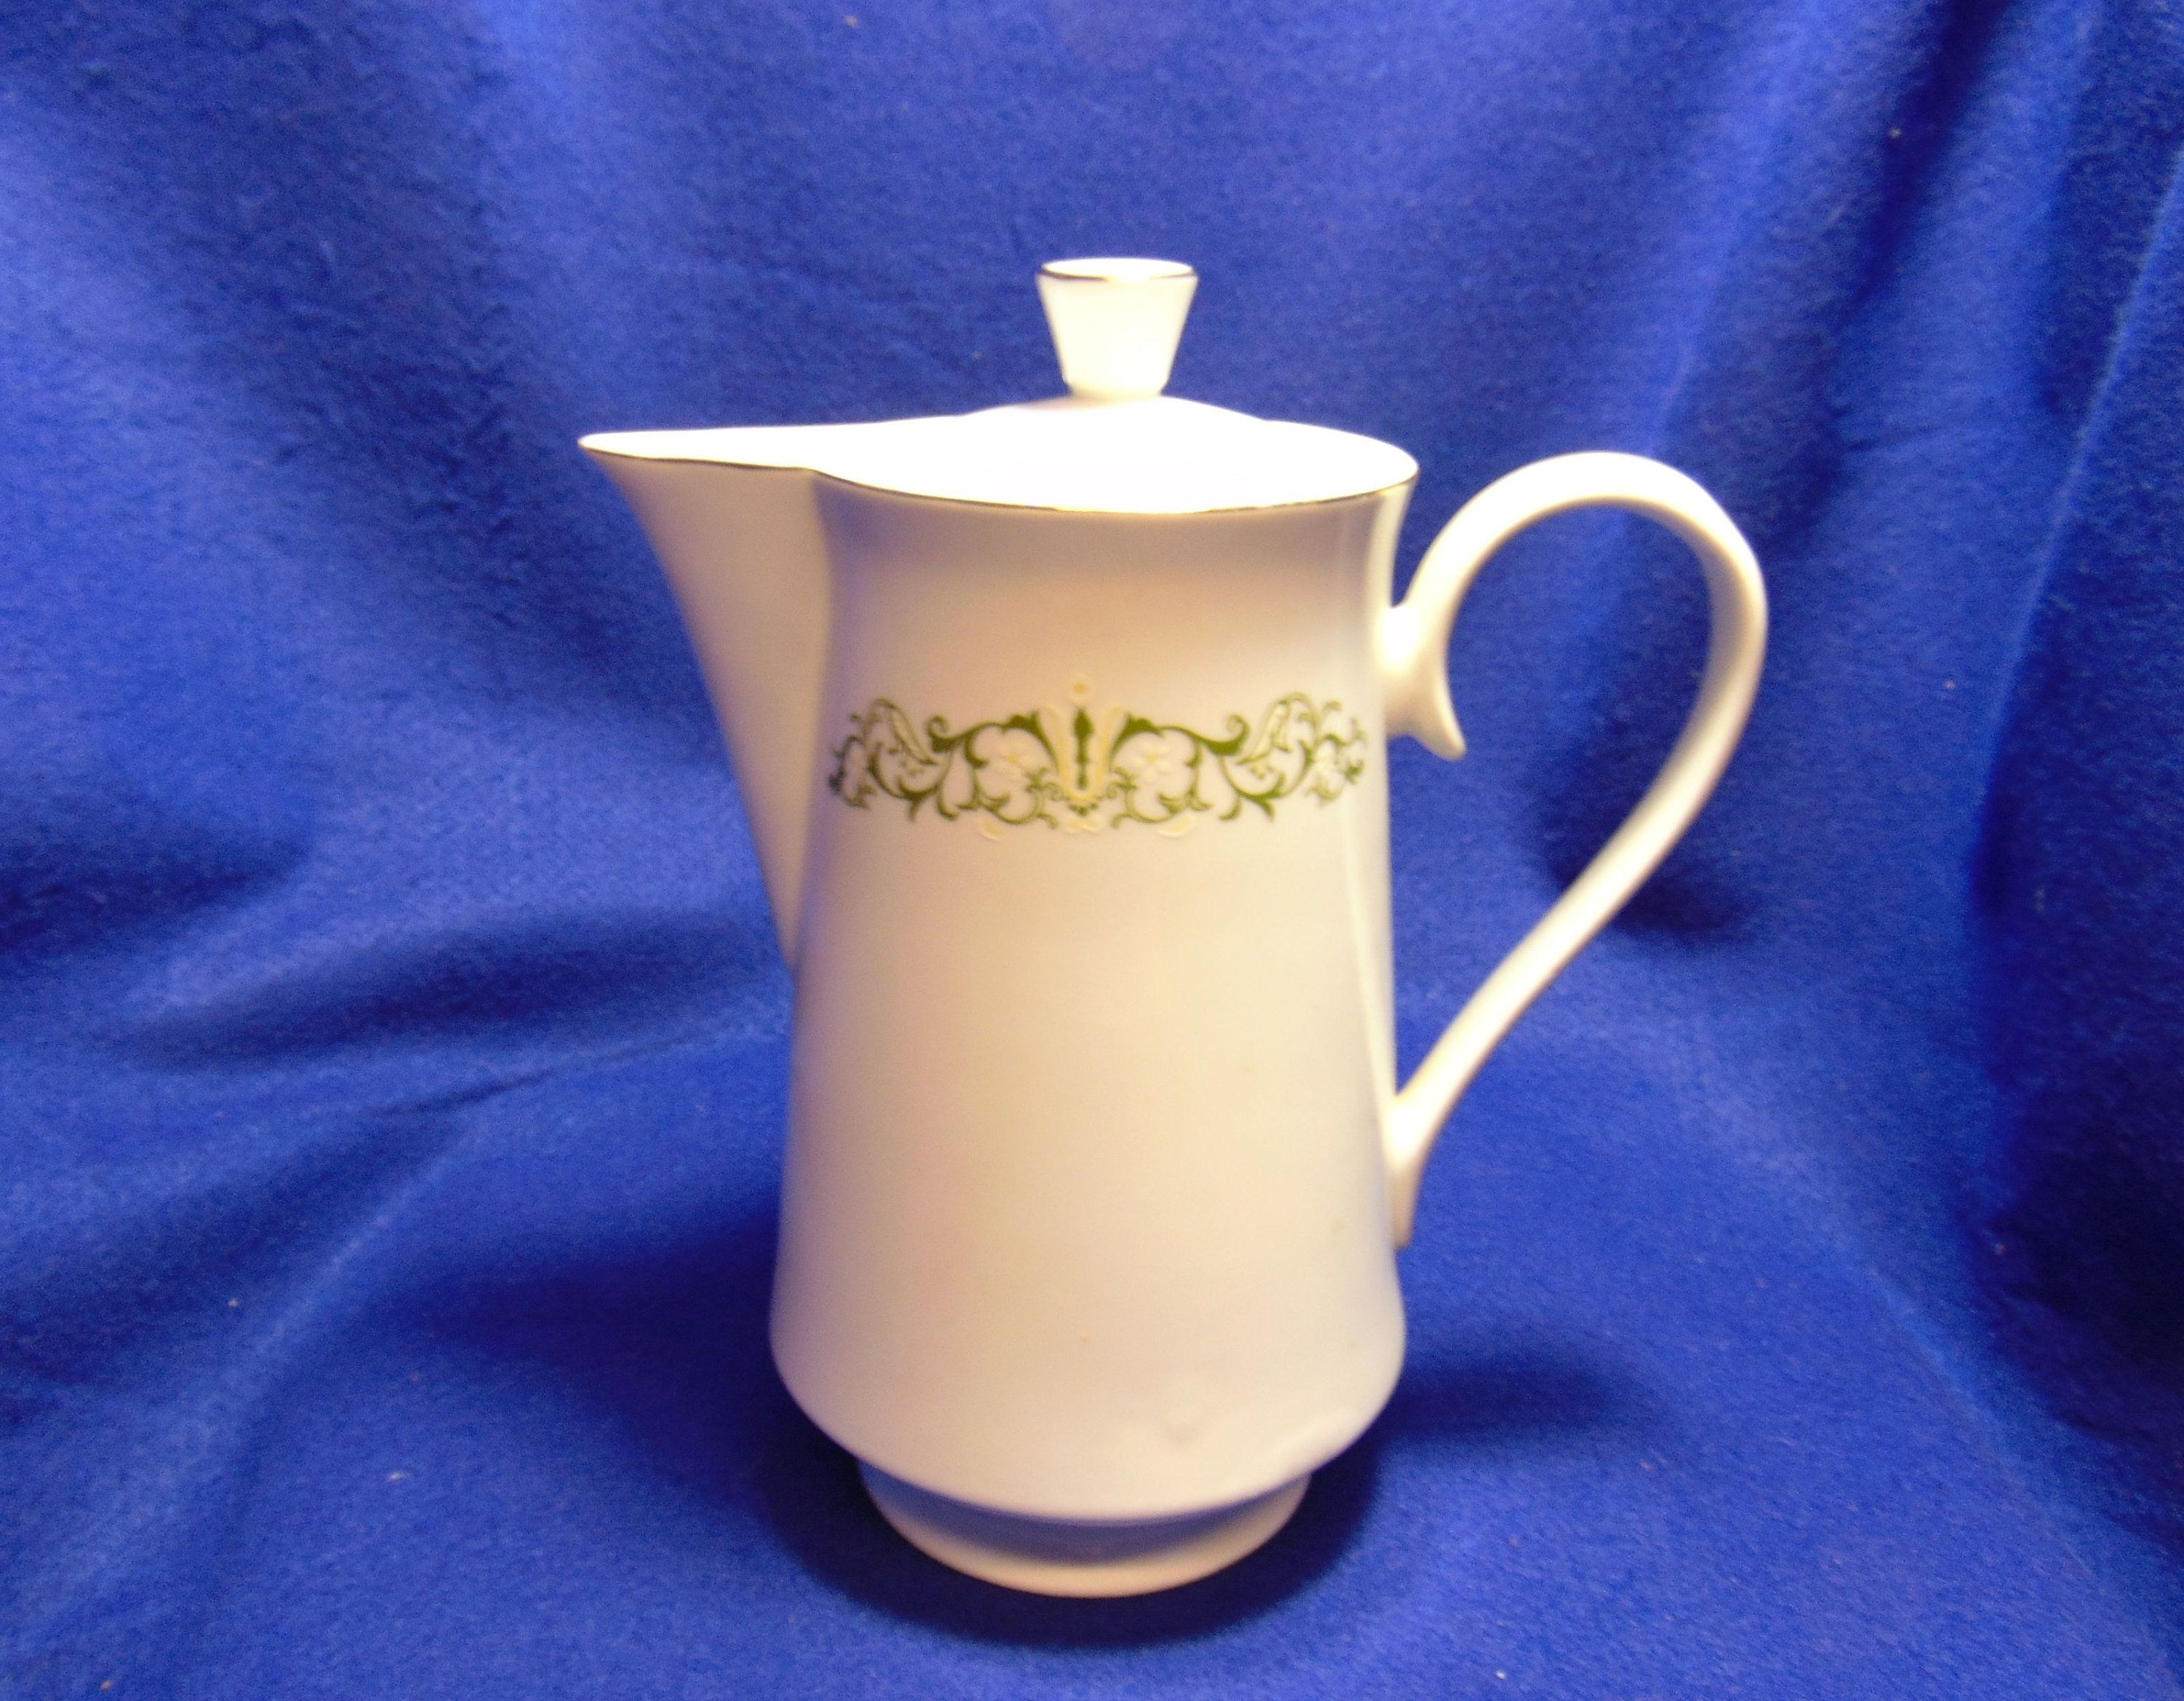 Bell Flower Coffee Server With Lid - Fine China - Made In Japan - 2999 - Gold Trim - Green Scroll Design #coffeeserver